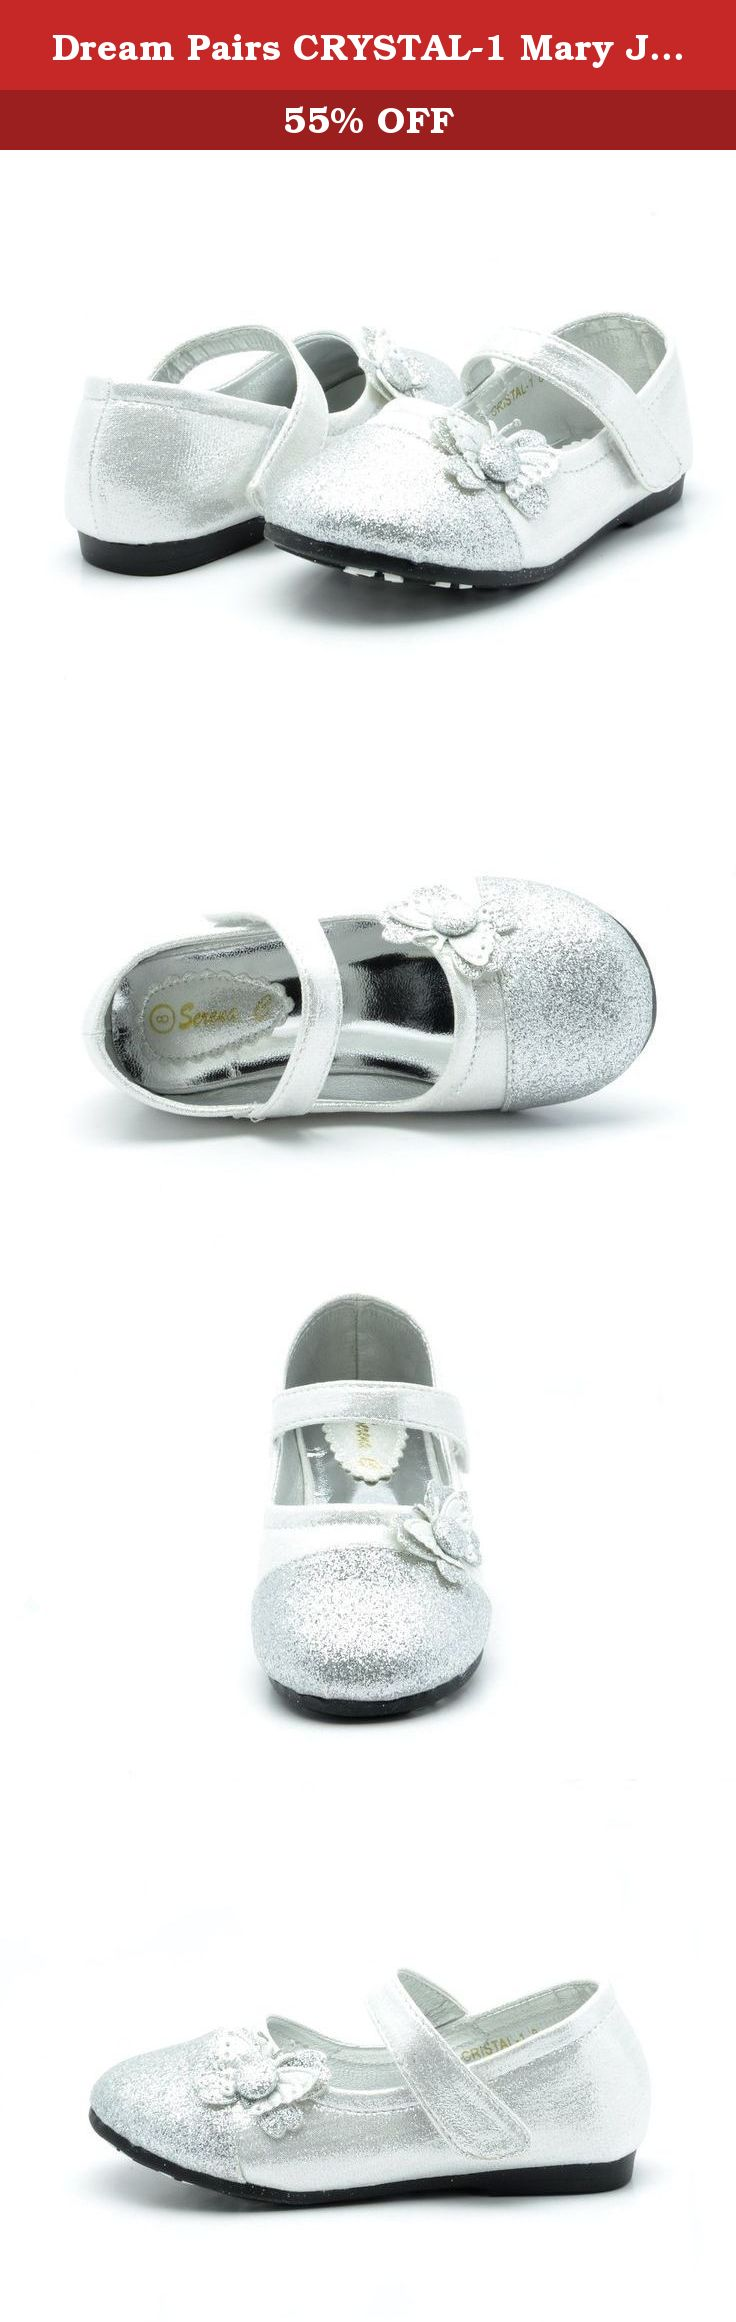 Dream Pairs CRYSTAL-1 Mary Jane Velcro Butterfly Glitter Ballerina Flat (Toddler/ Little Girl) New Silver Size 3. Your little angel will look very cute with a pair of this Dream Pairs girl's butterfly gliter ballet flat. Feature a beautiful pearl suede cut-out butterfly side-piece on vamp, extra padding for comfort. Pick from one of the assorted colors and mix and match with her favorite legging and dress for an adorable style.